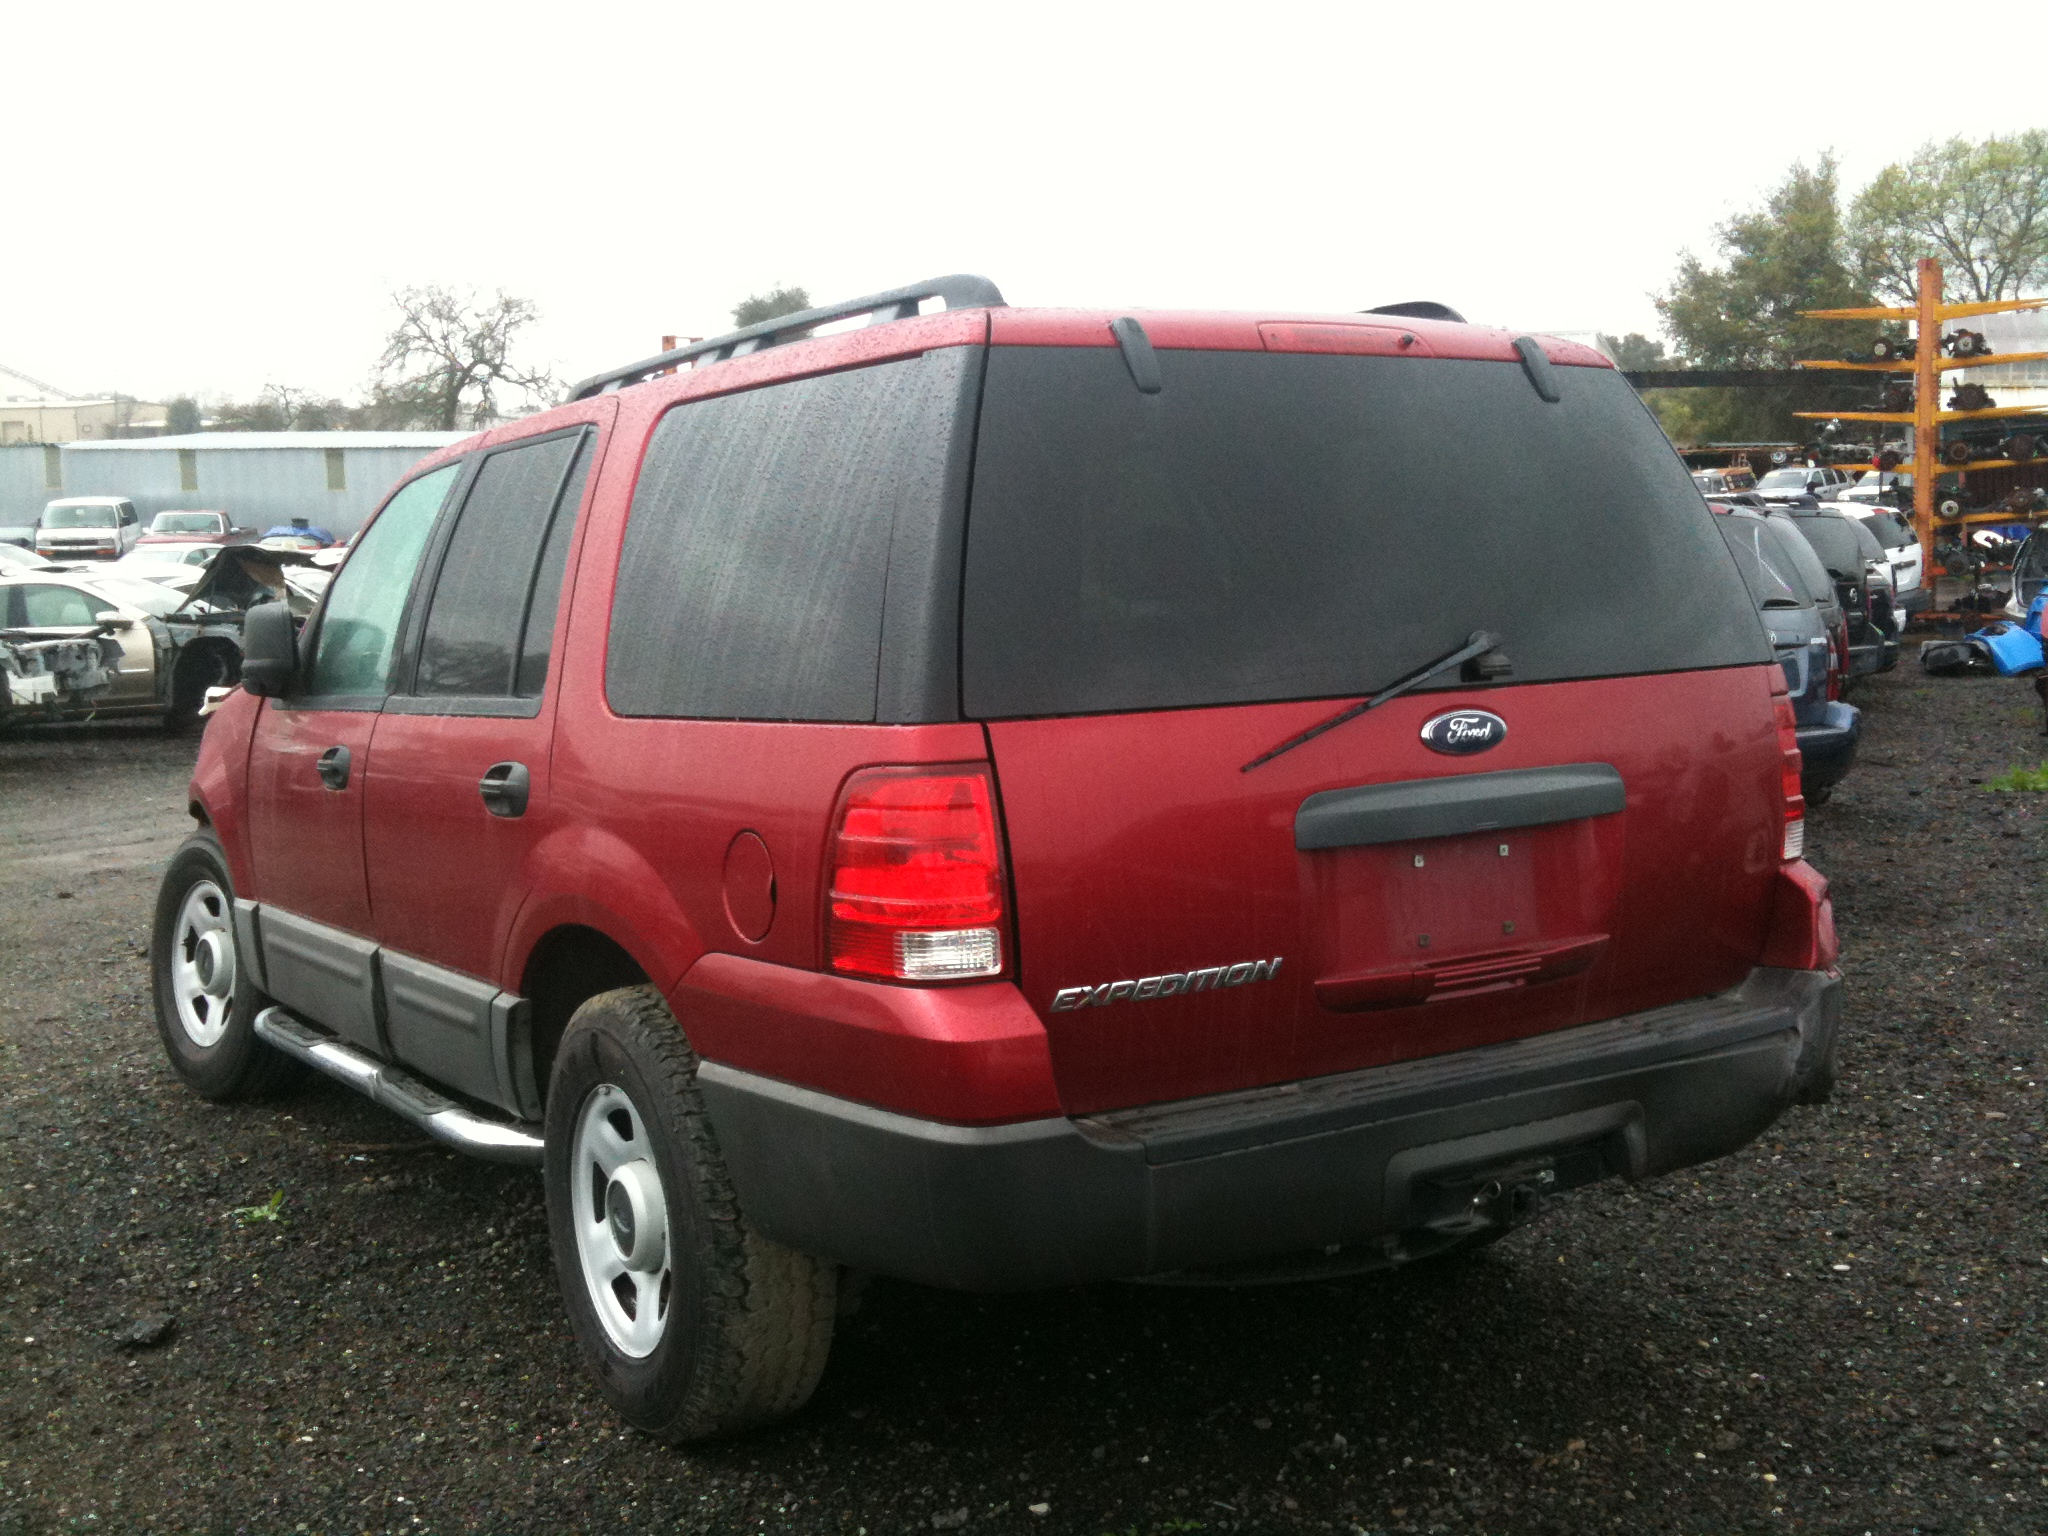 Ford Expedition #18